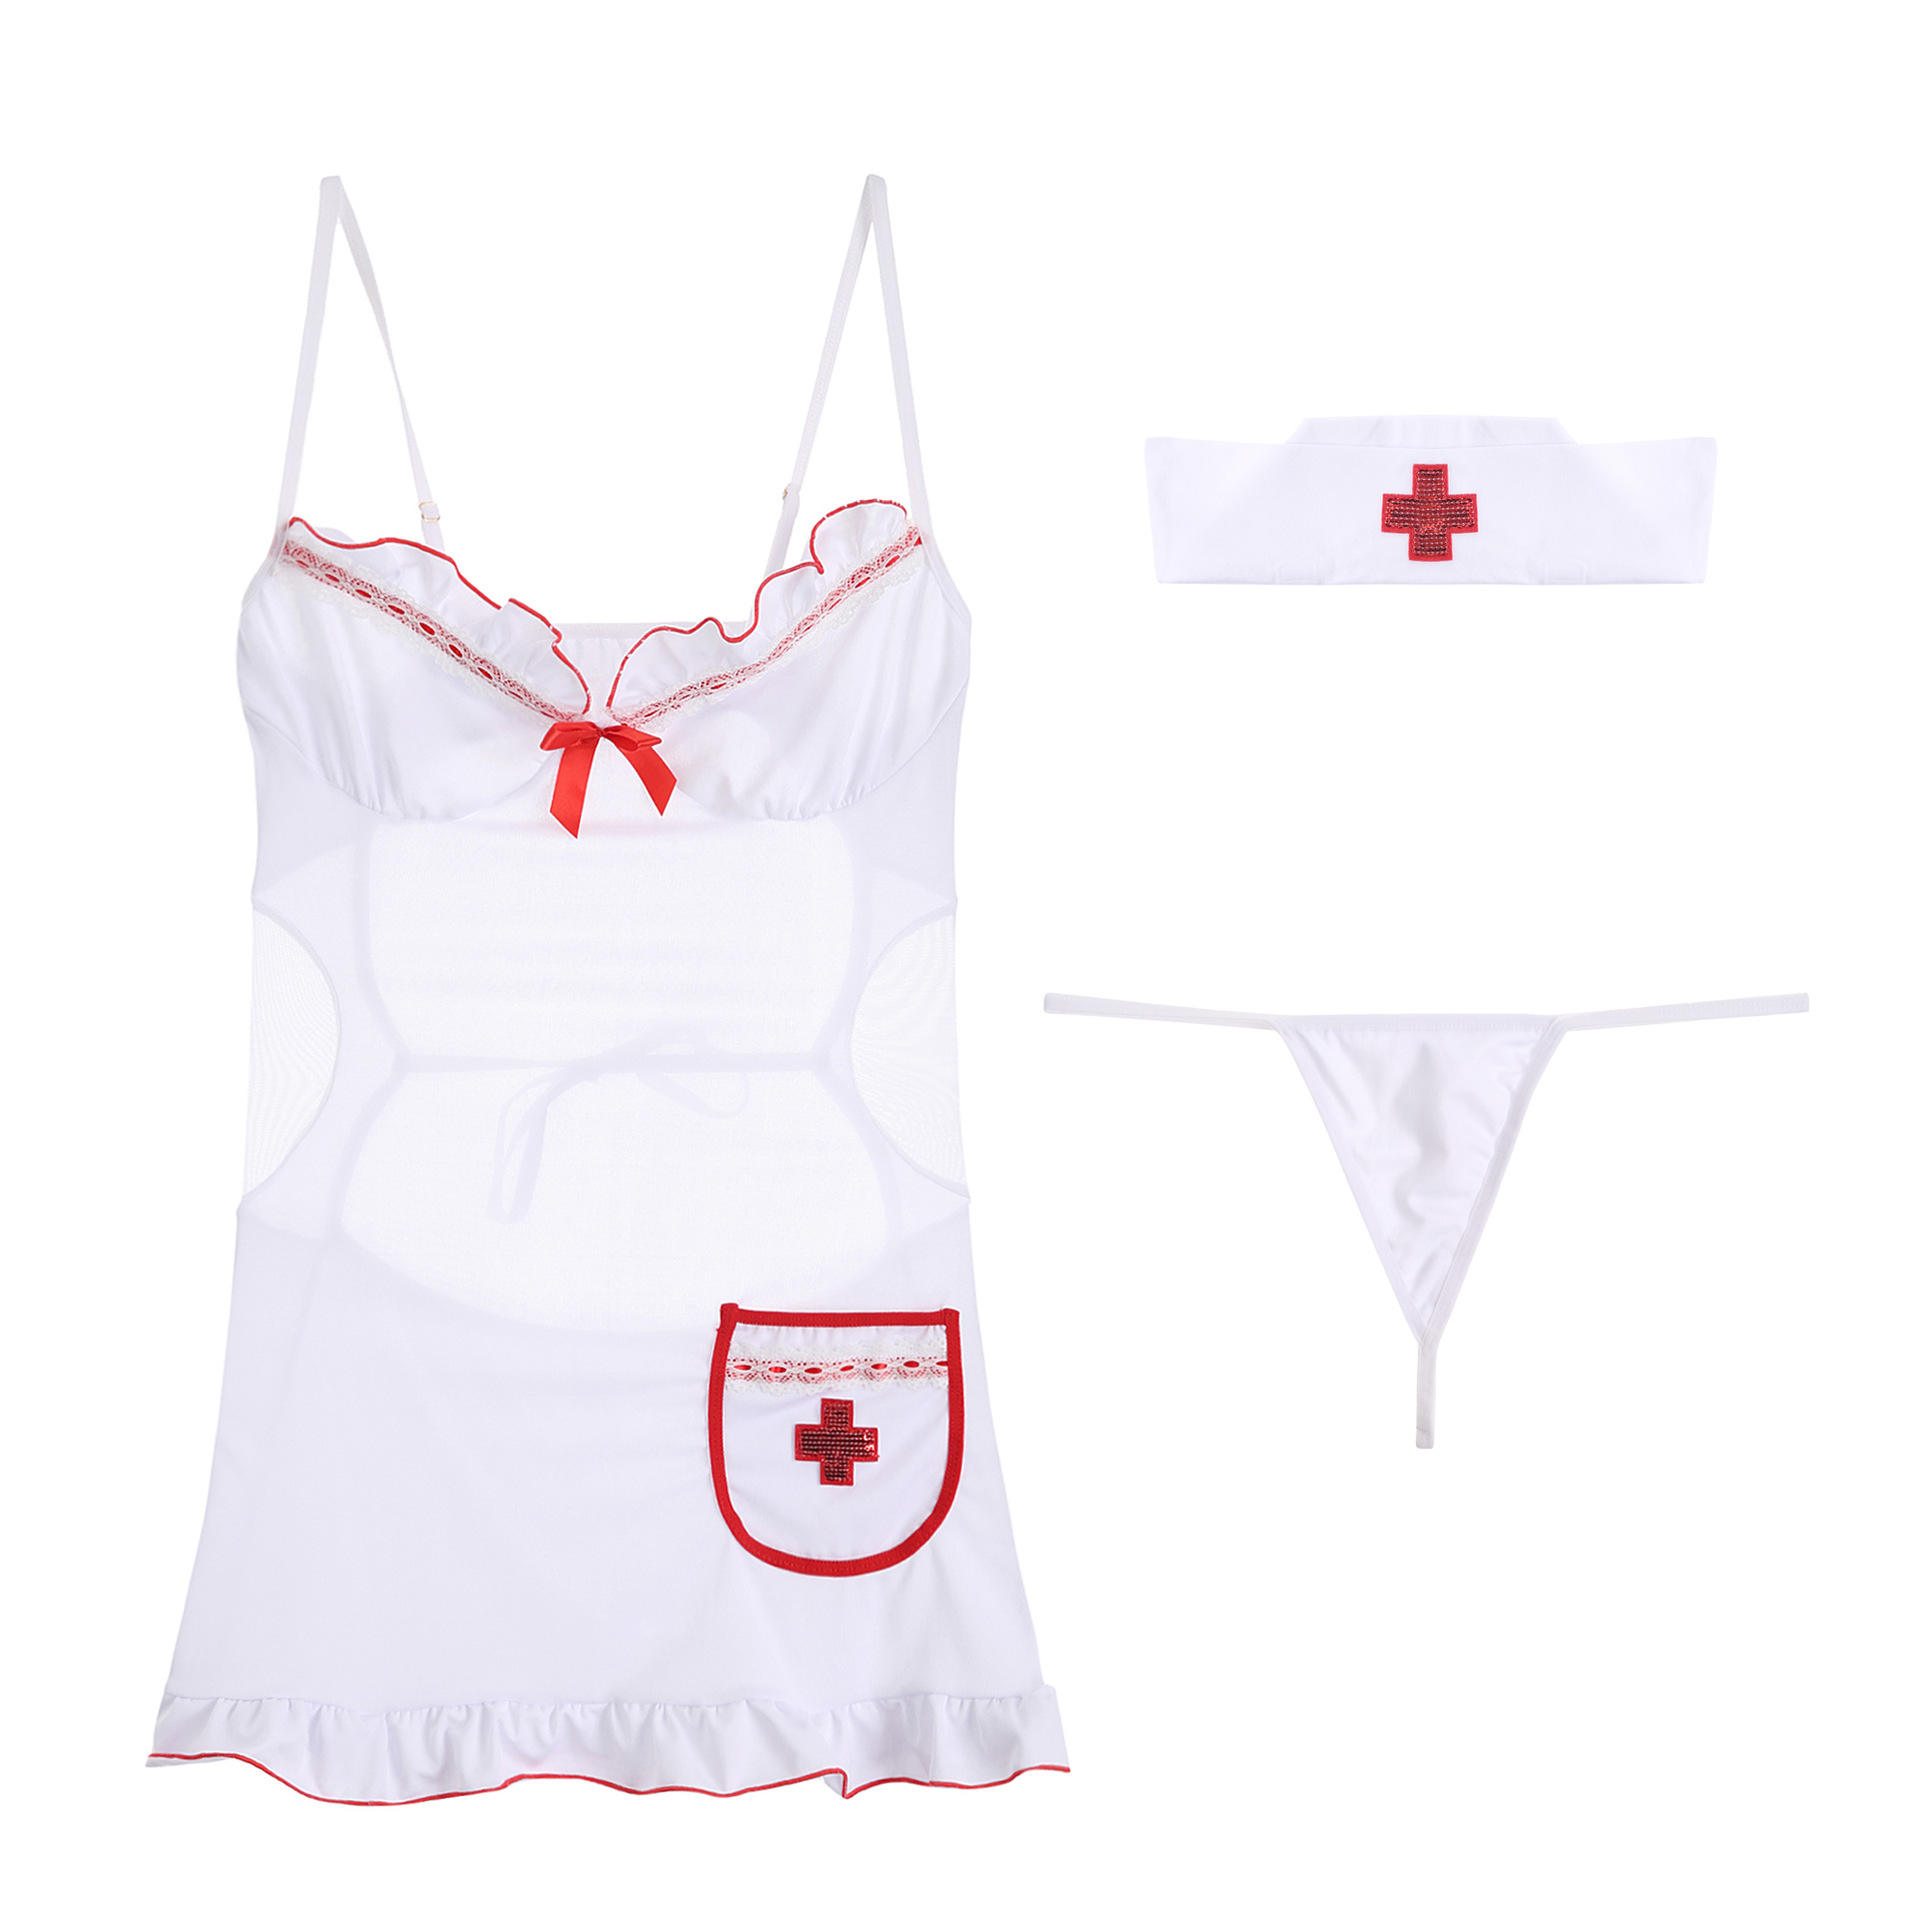 Sexy Erotic Lingerie Female Explosive Breasts Backless Nurse Outfit Temptation Three-point Nun Tight Uniform Suit